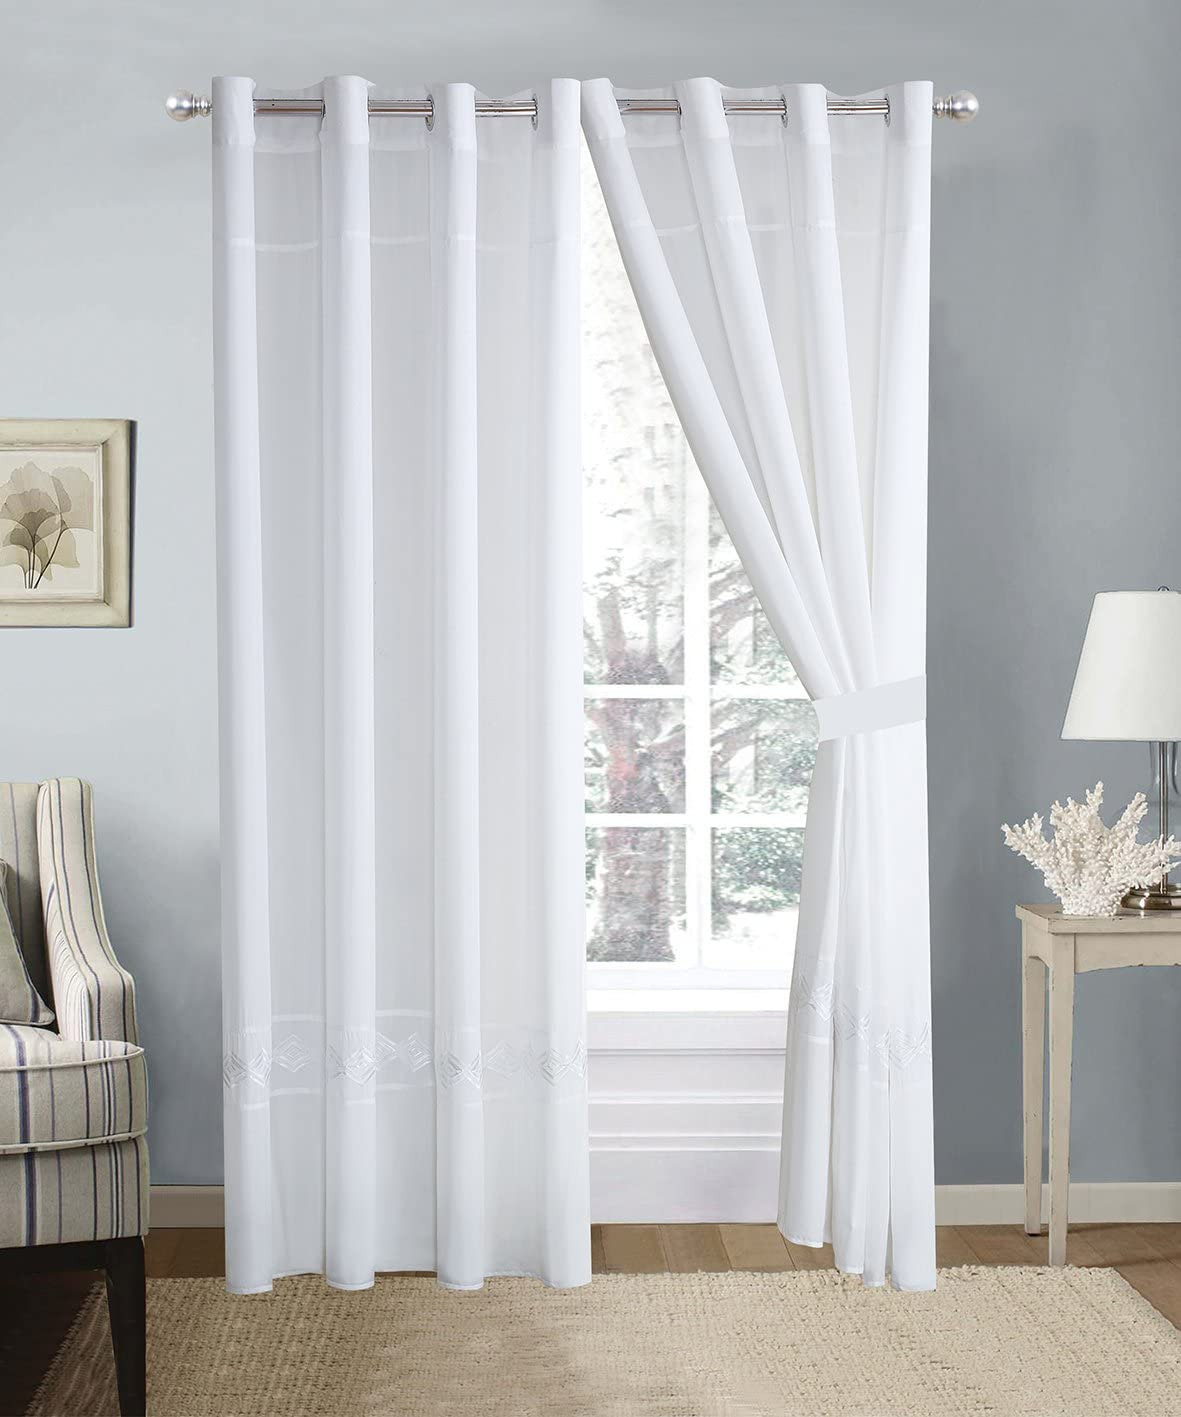 4 Piece White Double-Needle Stitch Pinch Pleat Grommet Window Curtain Set 108 x 84-inch, 2 Panels and 2 Ties